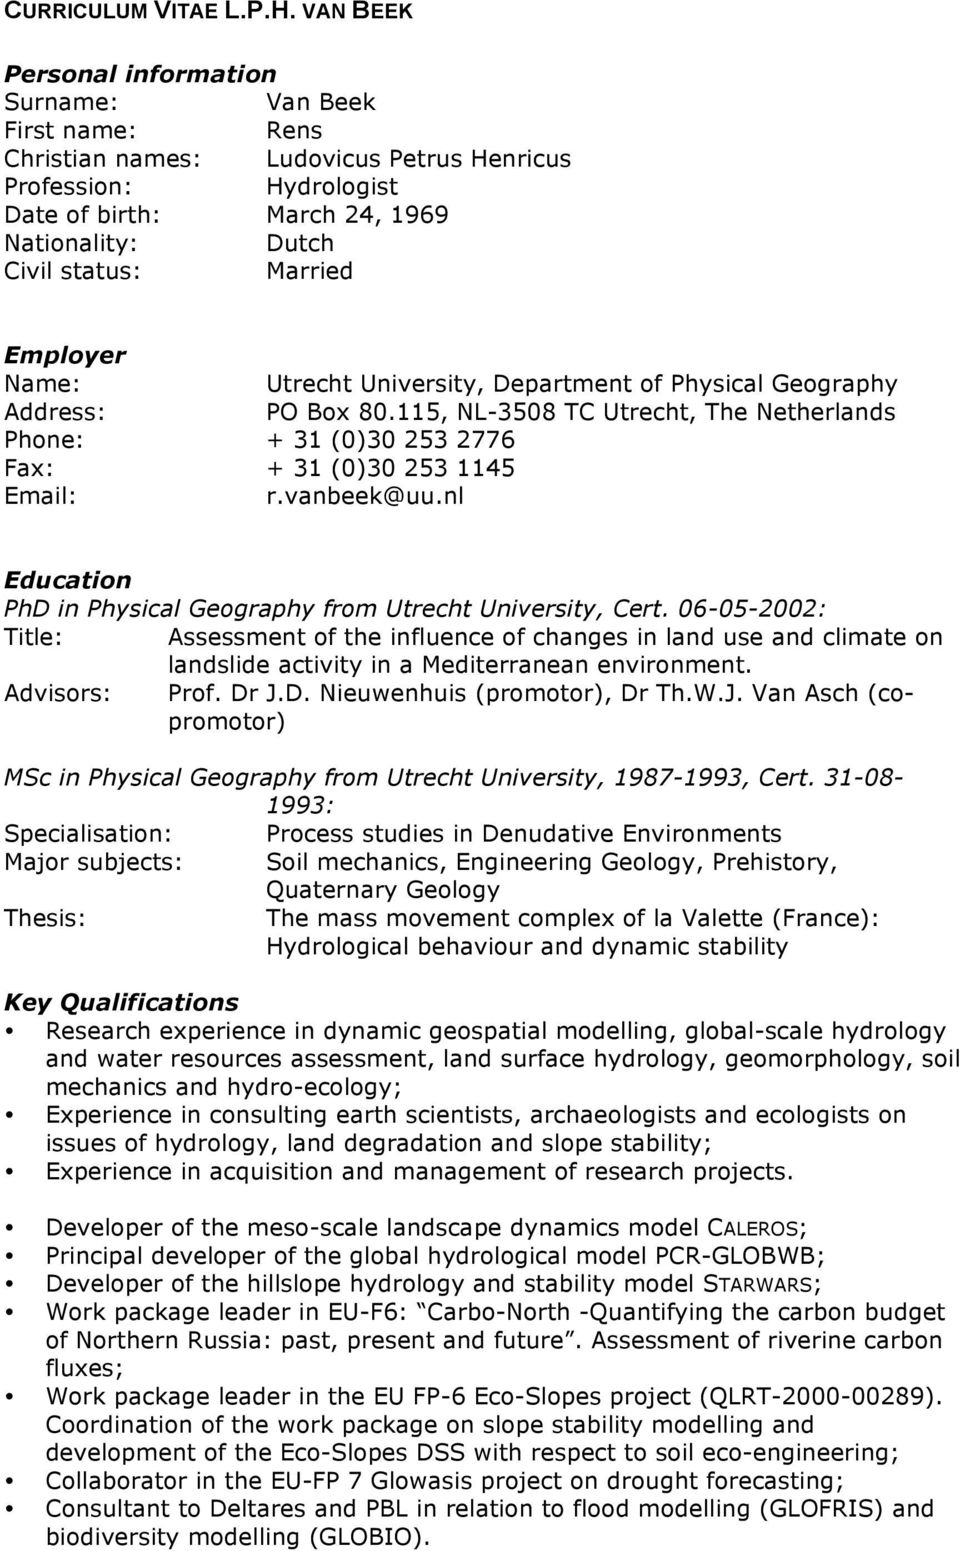 Married Employer Name: Utrecht University, Department of Physical Geography Address: PO Box 80.115, NL-3508 TC Utrecht, The Netherlands Phone: + 31 (0)30 253 2776 Fax: + 31 (0)30 253 1145 Email: r.